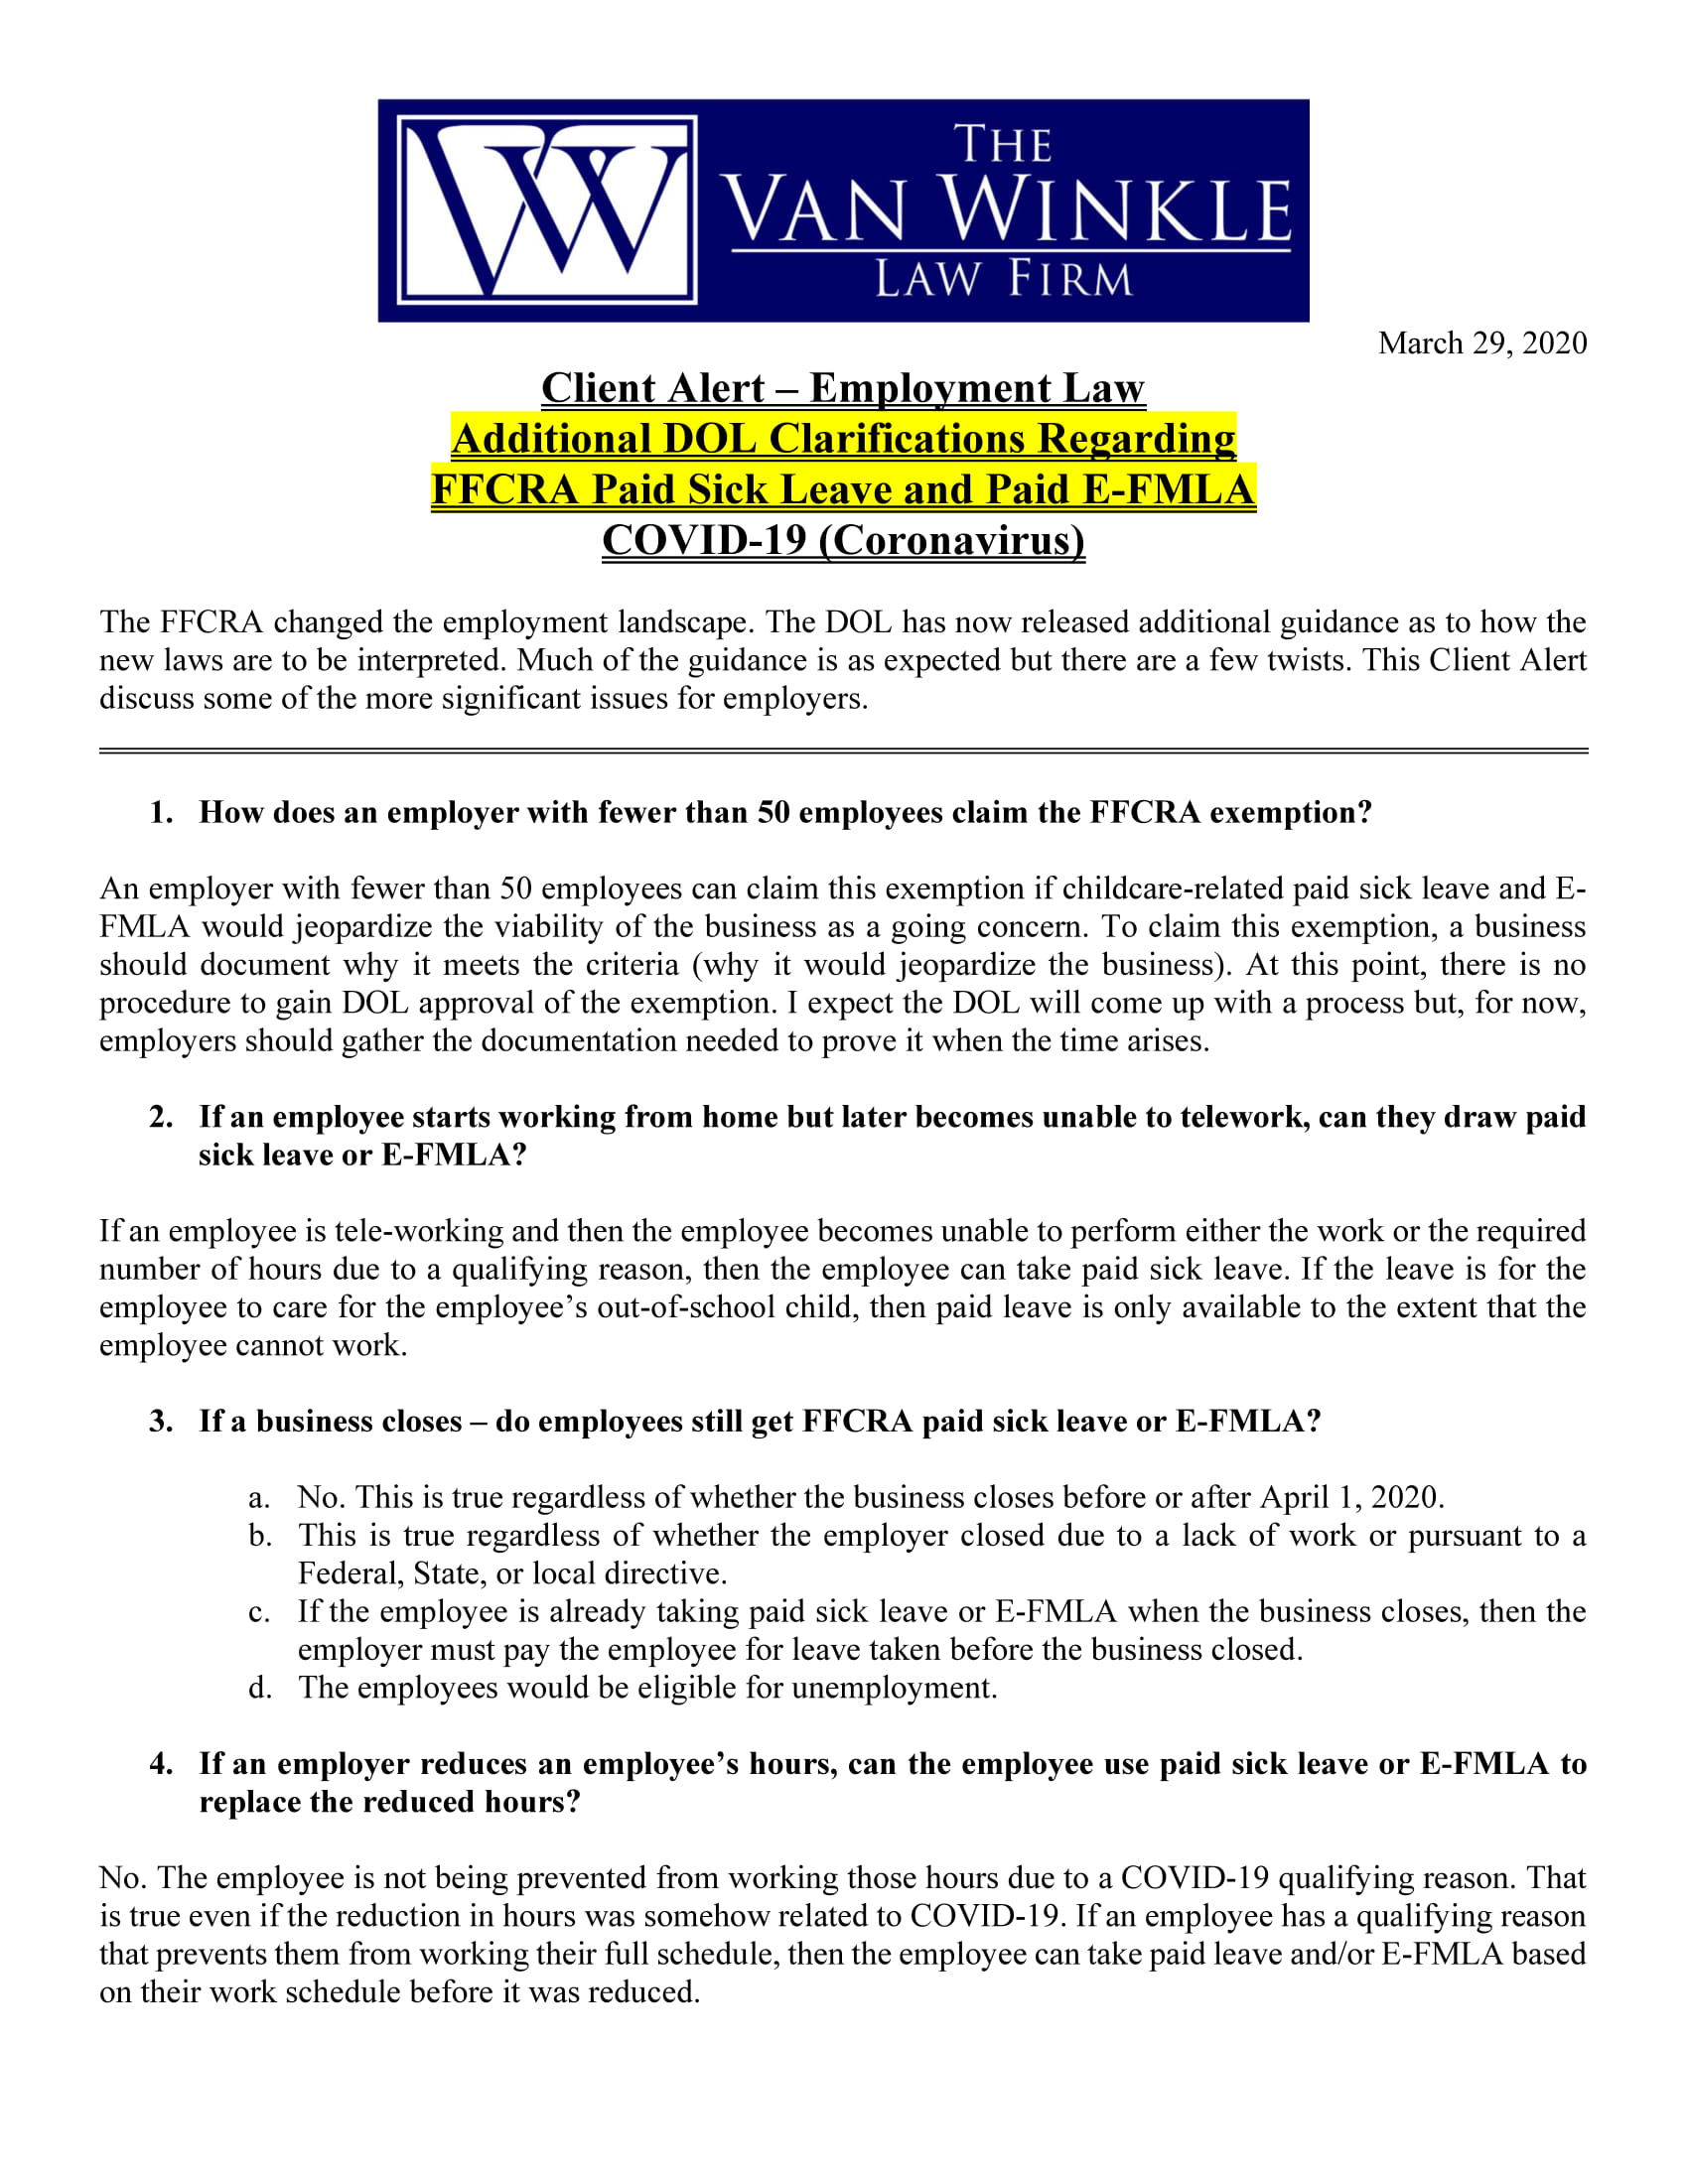 Additional DOL Clarifications Page 1